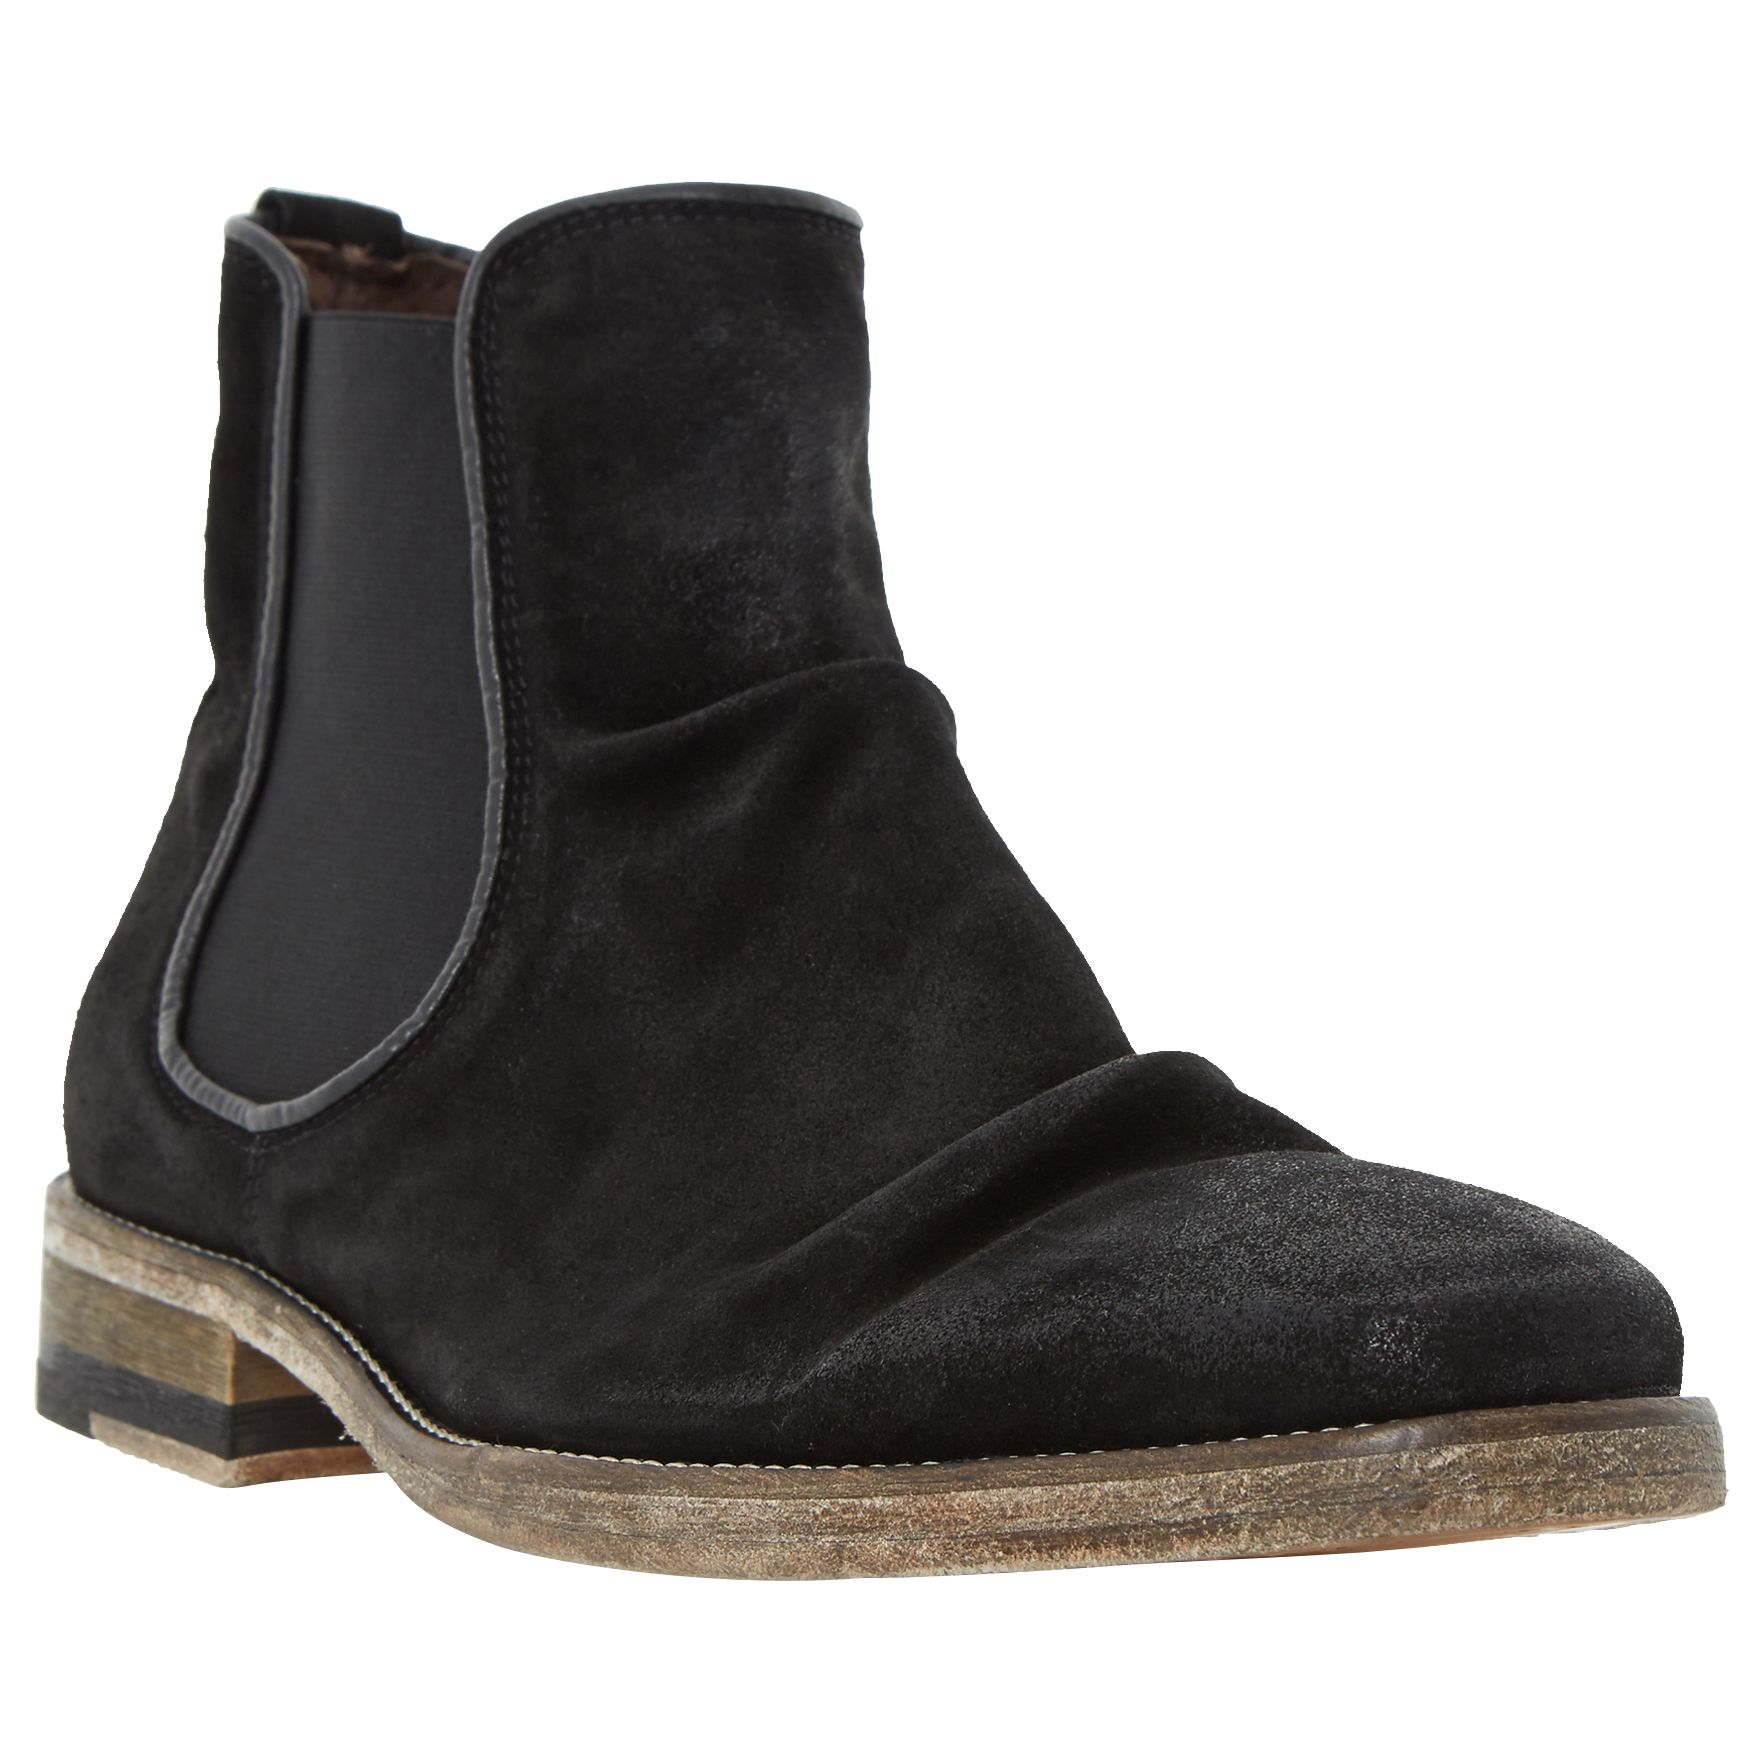 Bertie Bertie Chingy Washed Suede Chelsea Boots